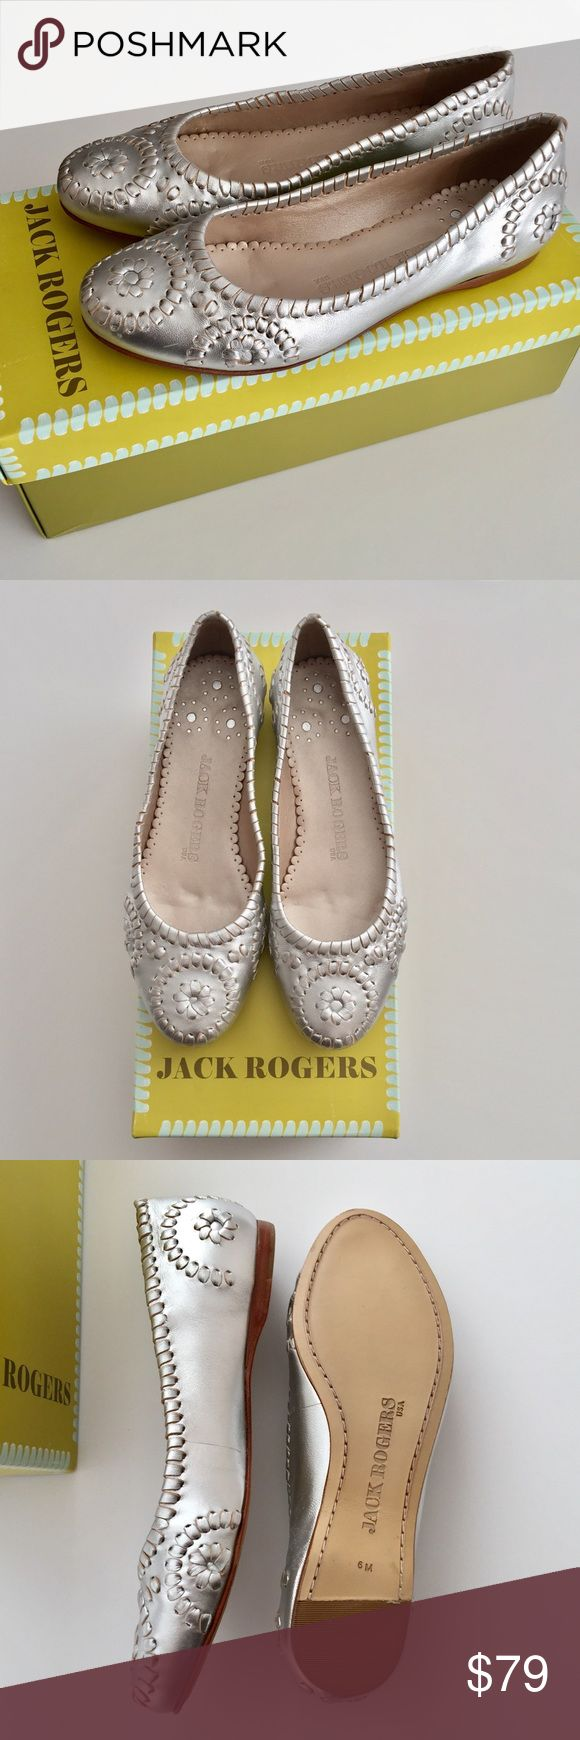 Brand New! Jack Rogers Slim Flat - Silver Shoe: Roger Slim Flat Style #: 1611035FM Color: Silver Size: 6 Medium  Never worn. No scuffs on bottoms. Fit true to size. Comes with box. Jack Rogers Shoes Flats & Loafers